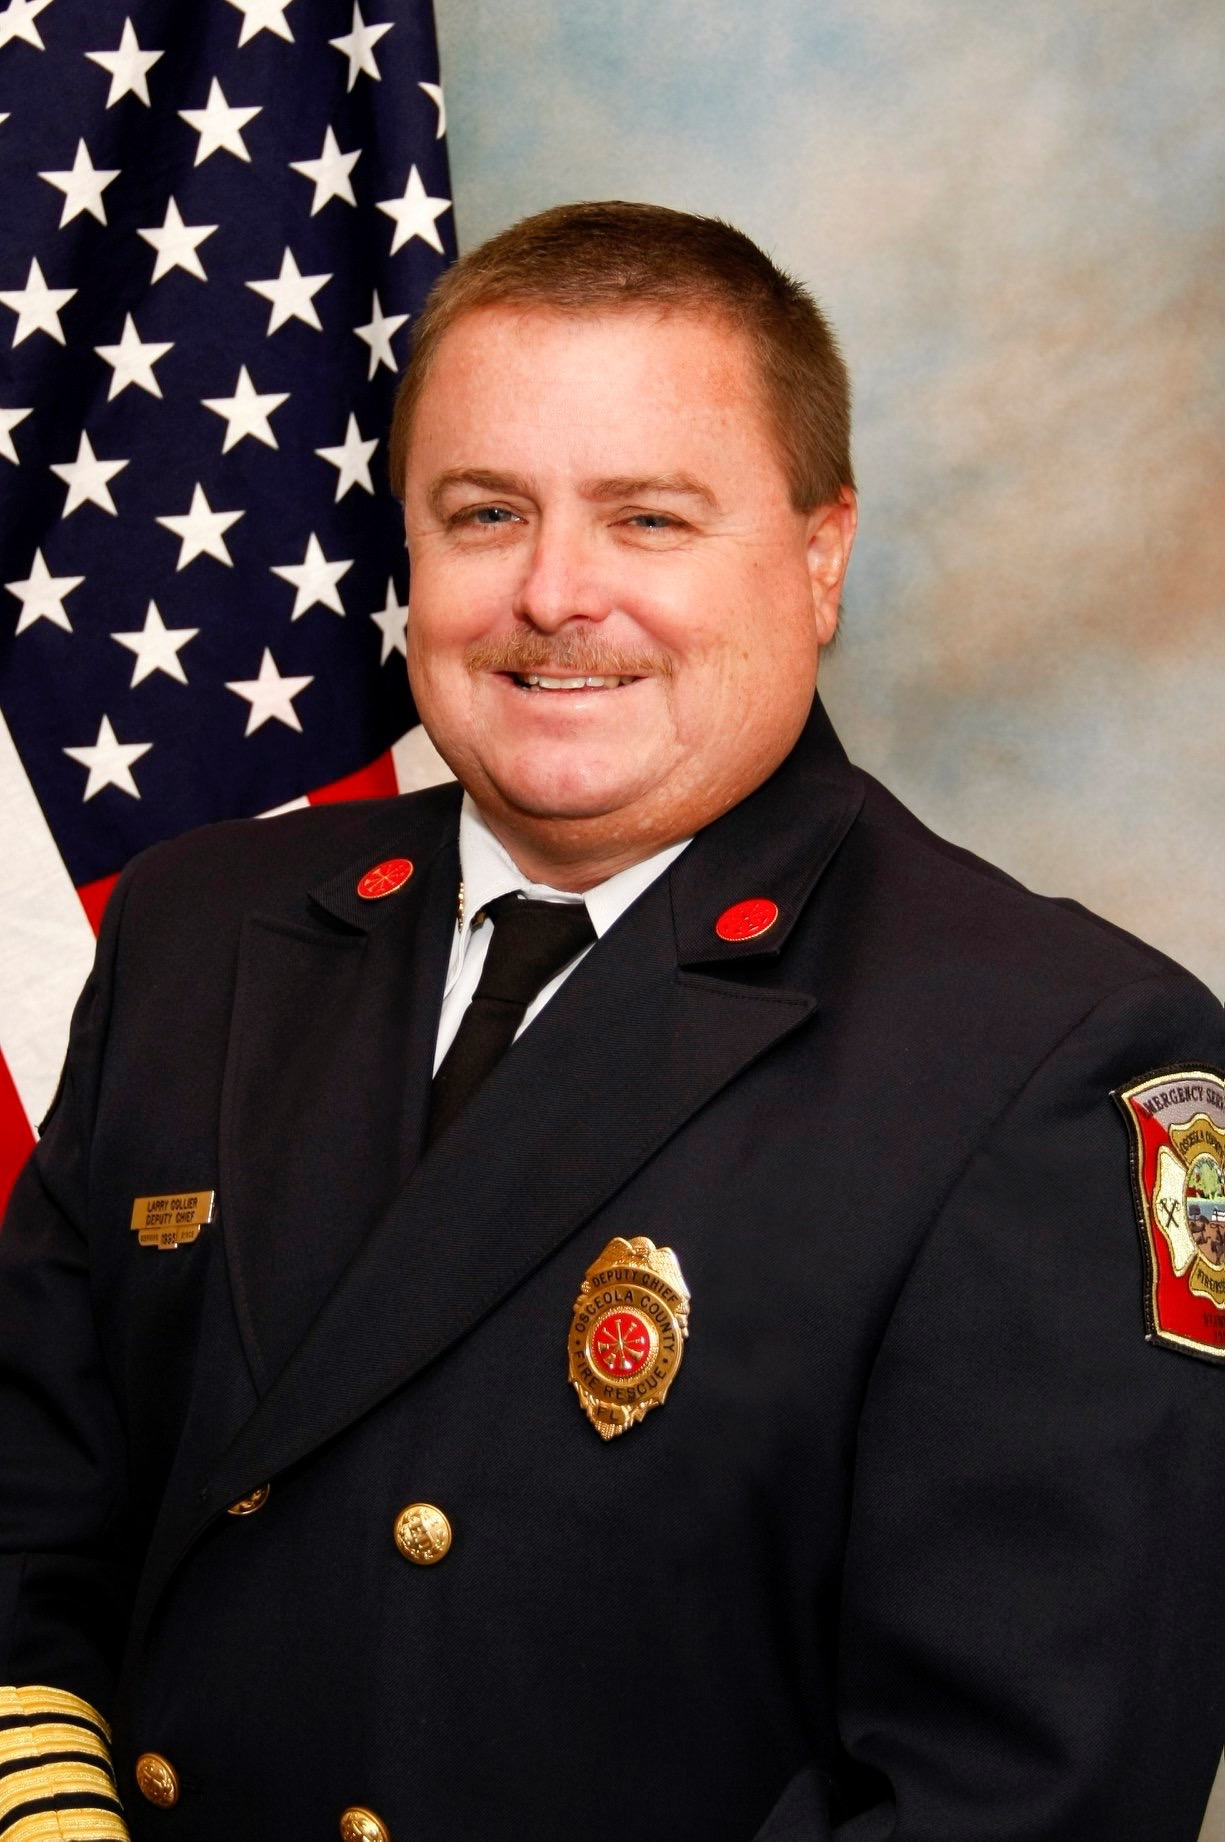 Chief Larry Collier - Osceola County FR